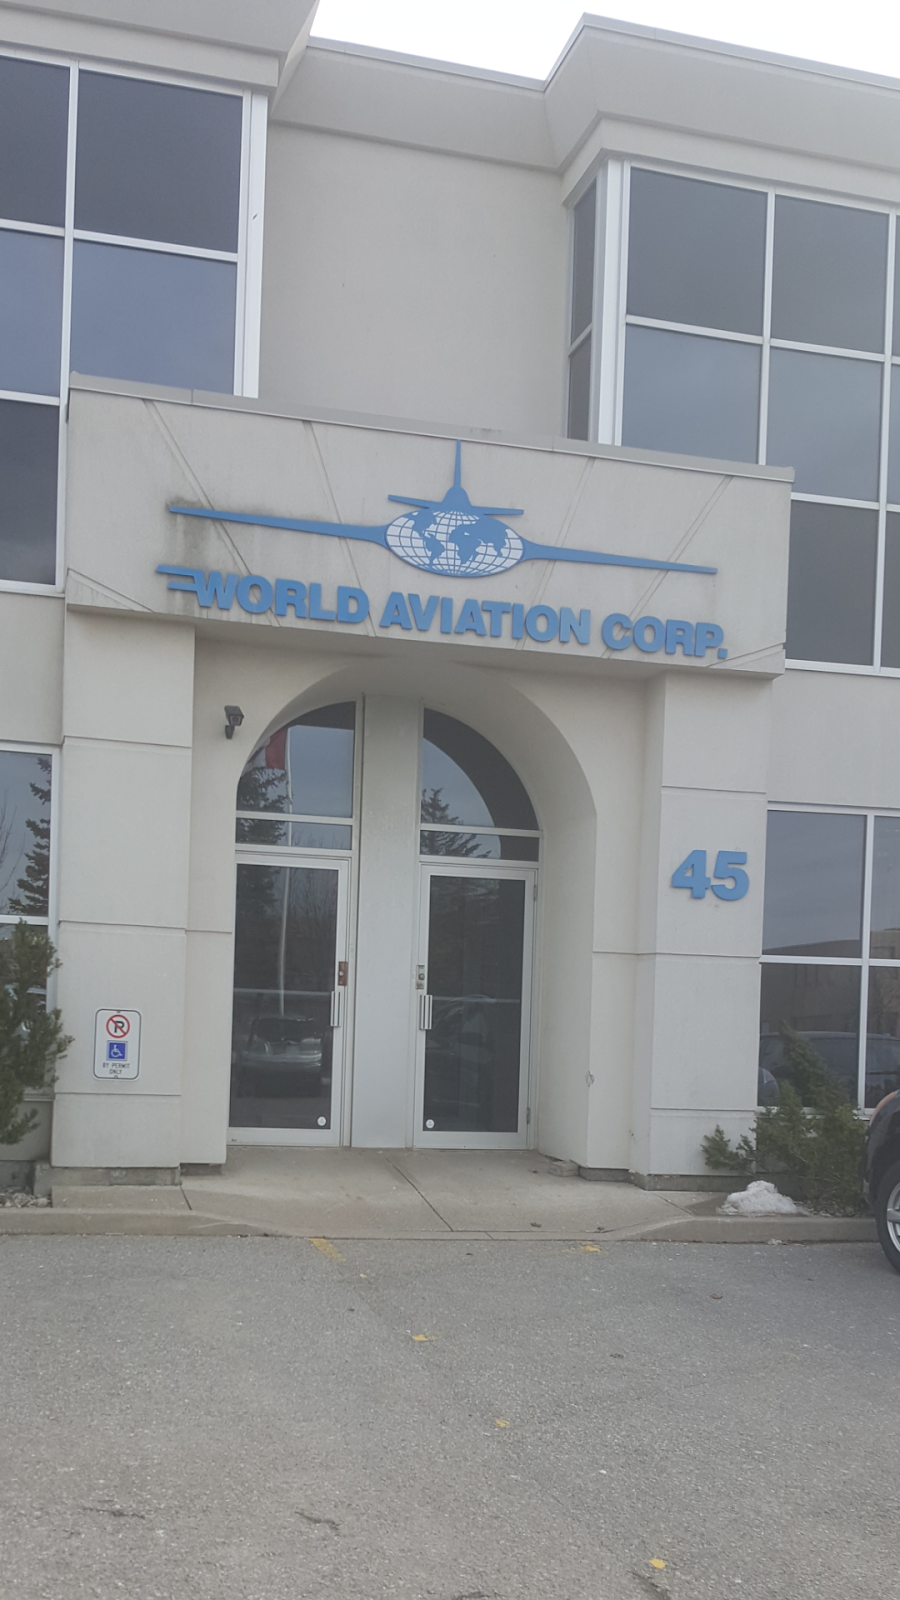 World Aviation Corporation | store | 45 Corstate Ave, Concord, ON L4K 4Y2, Canada | 9056604462 OR +1 905-660-4462